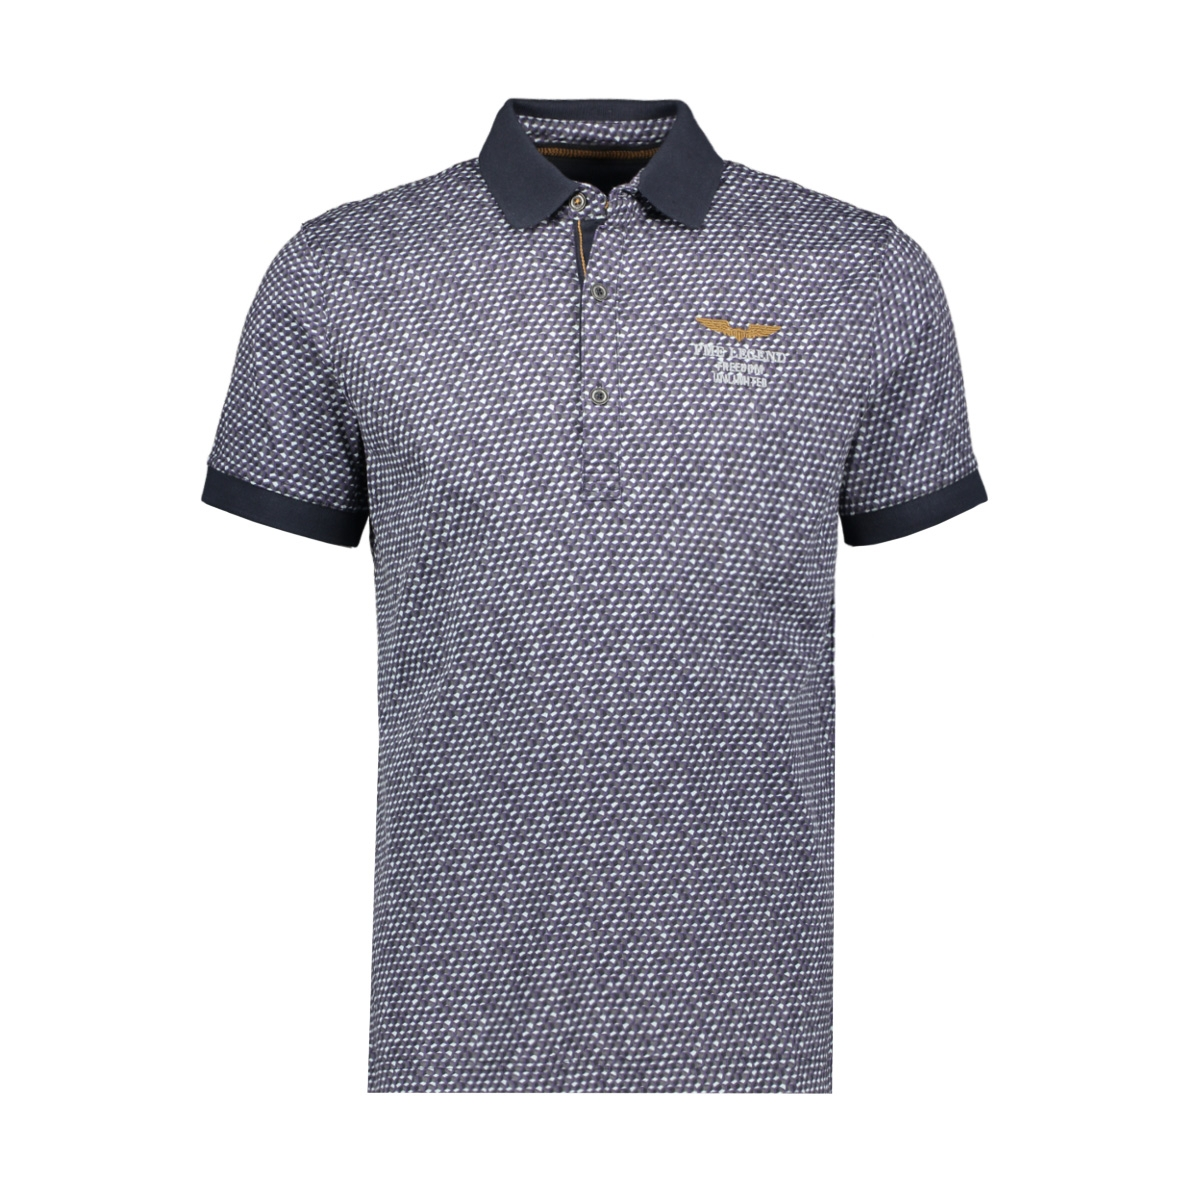 single jersey short sleeve polo ppss195852 pme legend polo 5281